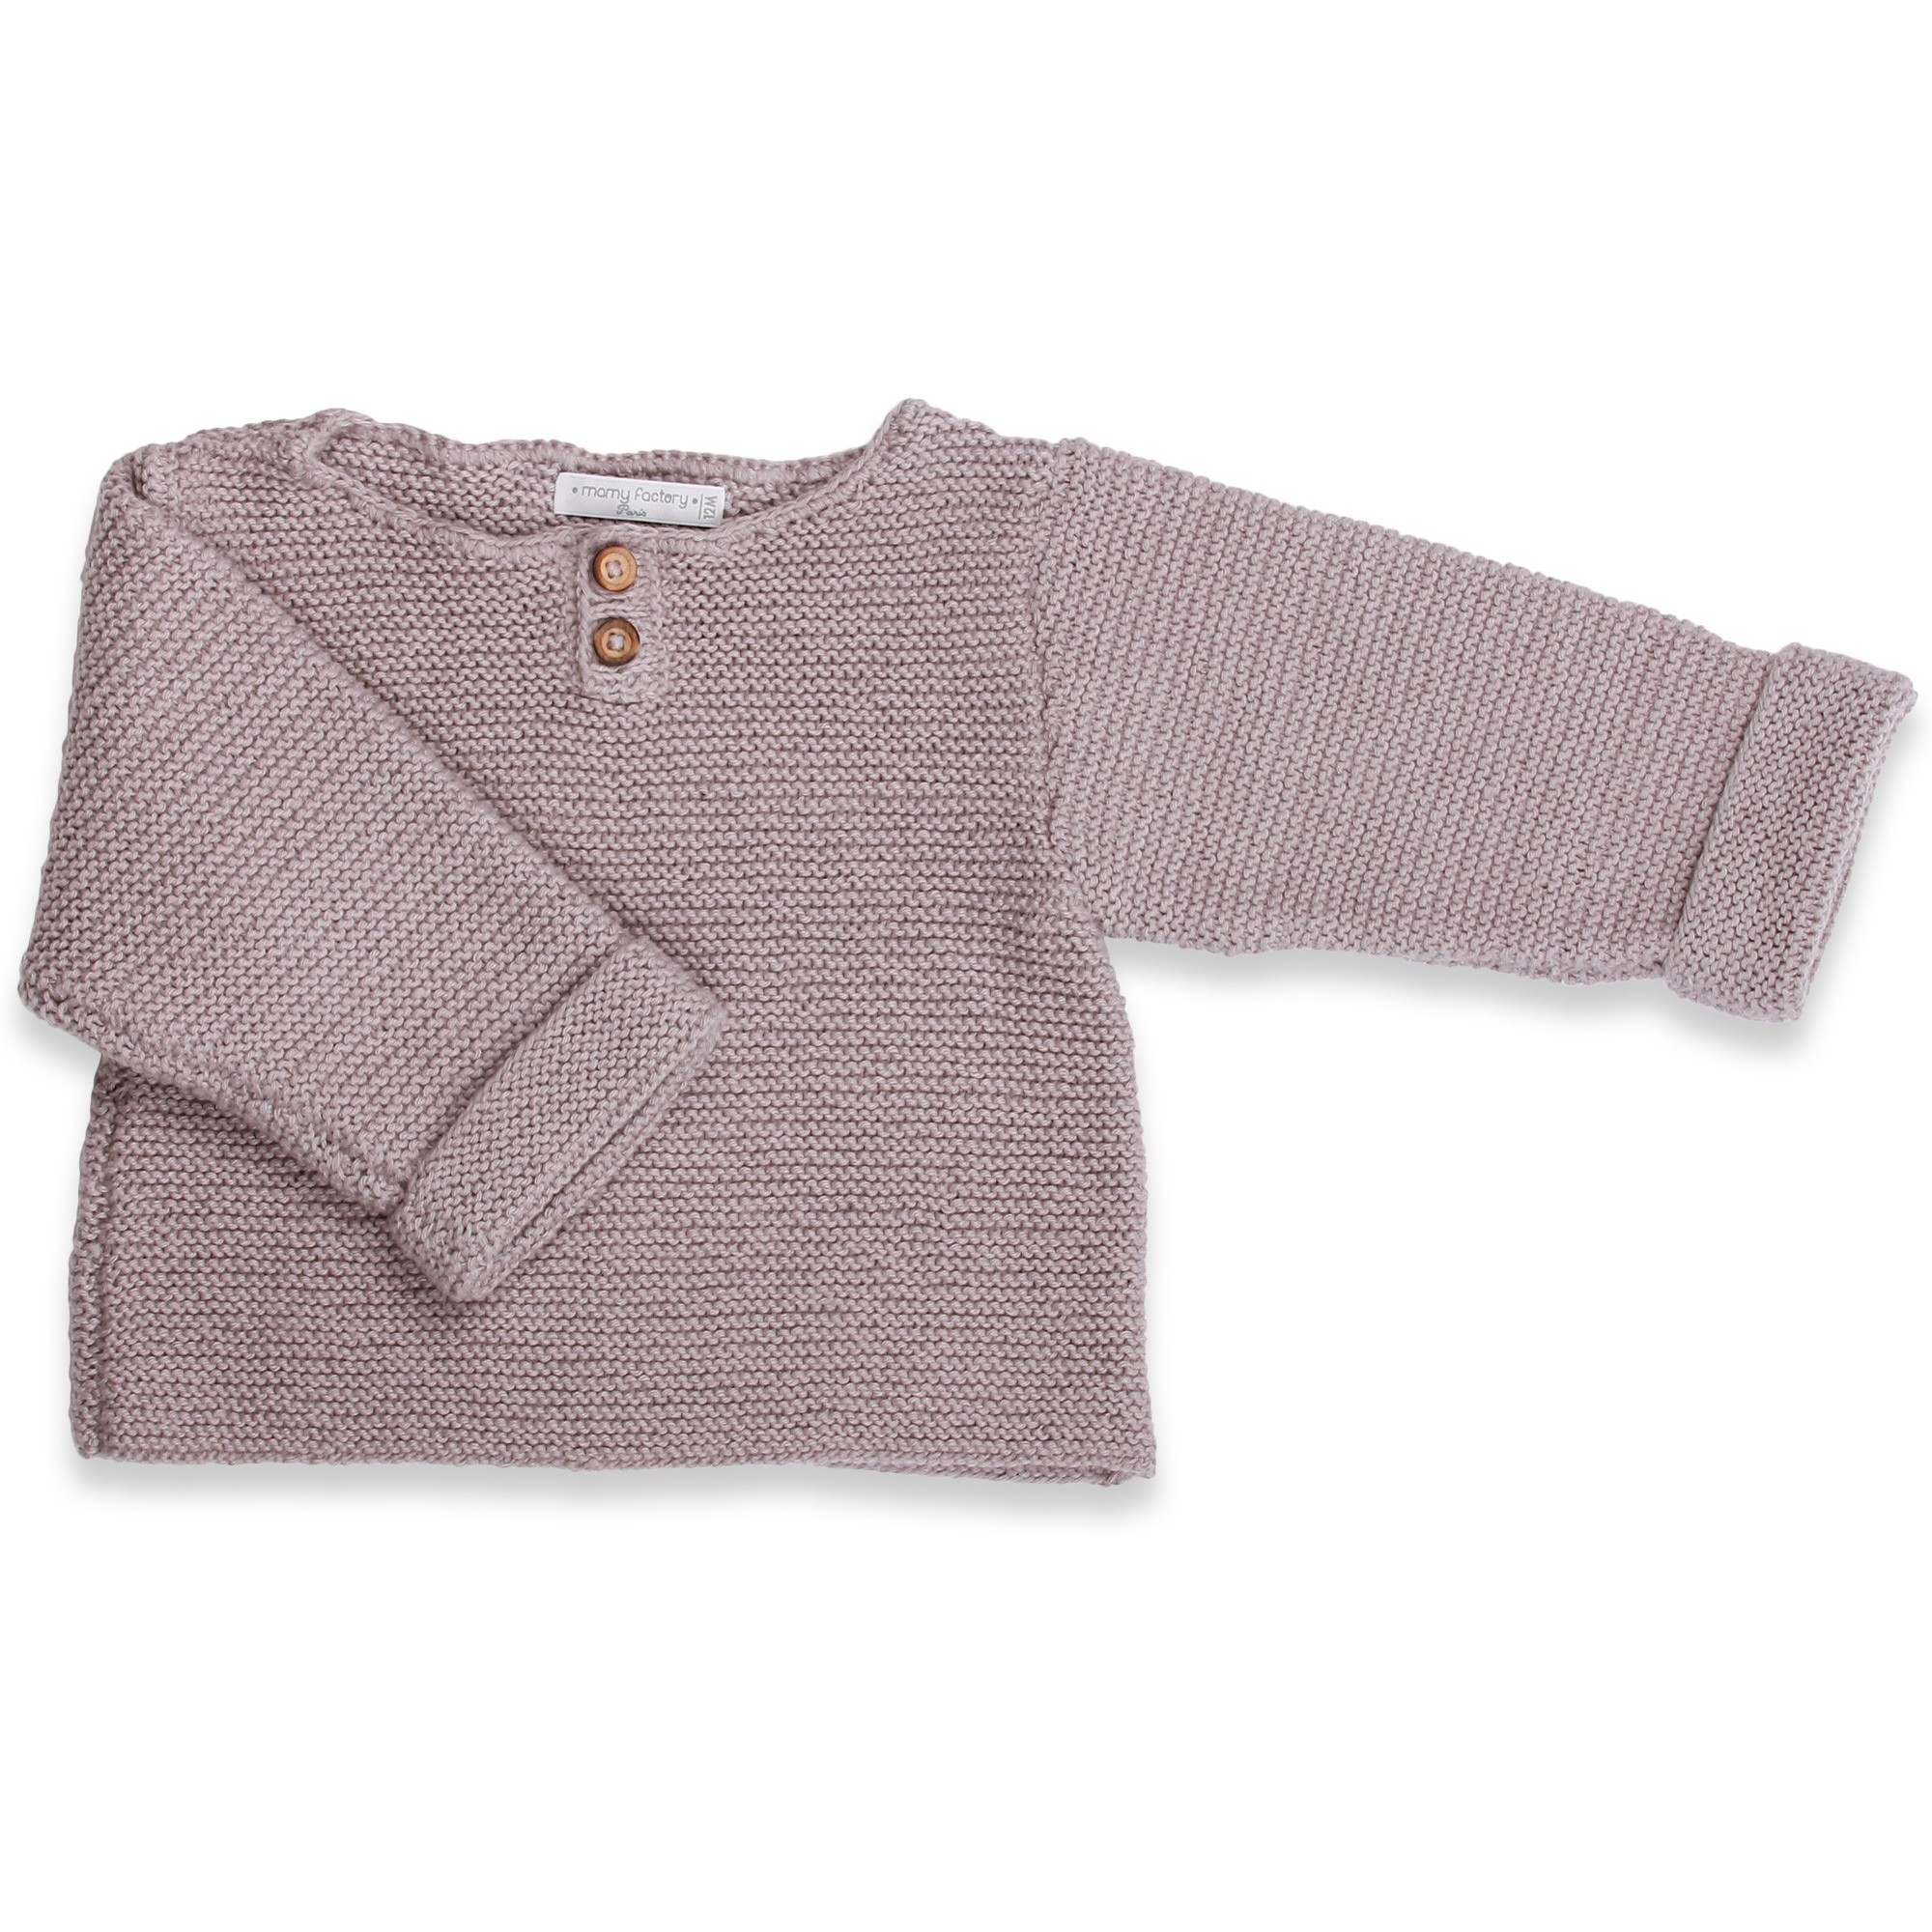 Grannys knitwear - Grey sweater for babies & children knitted by gra...